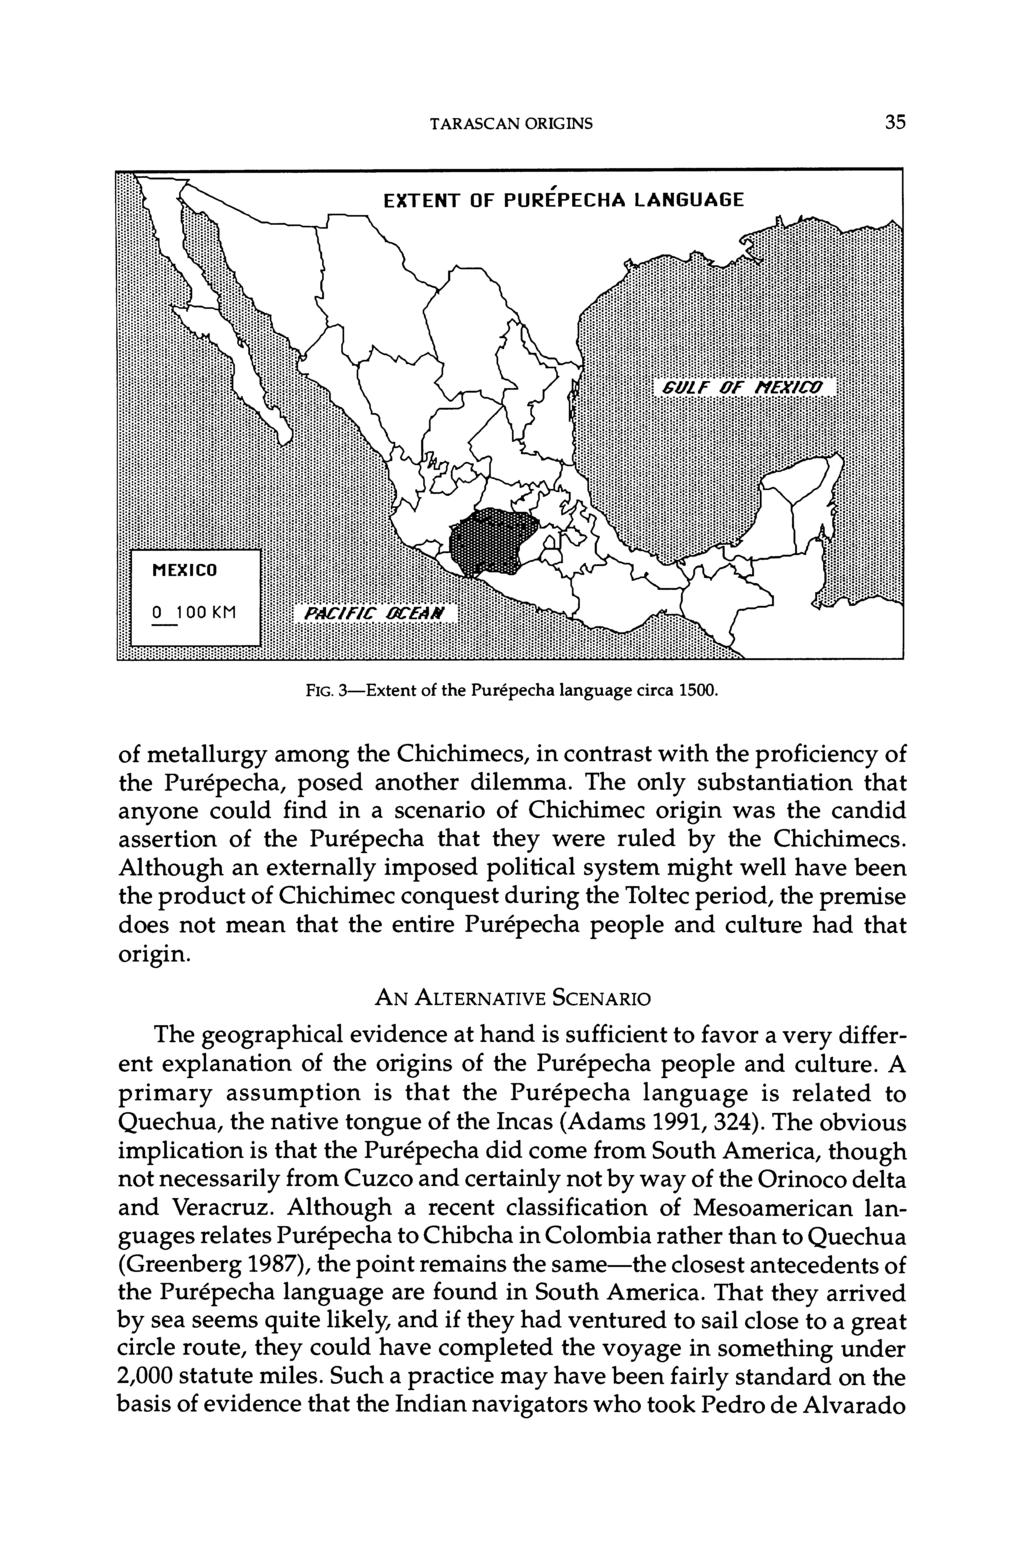 TARASCAN ORIGINS 35 FIG. 3-Extent of the Purepecha language circa 1500. of metallurgy among the Chichimecs, in contrast with the proficiency of the Purepecha, posed another dilemma.